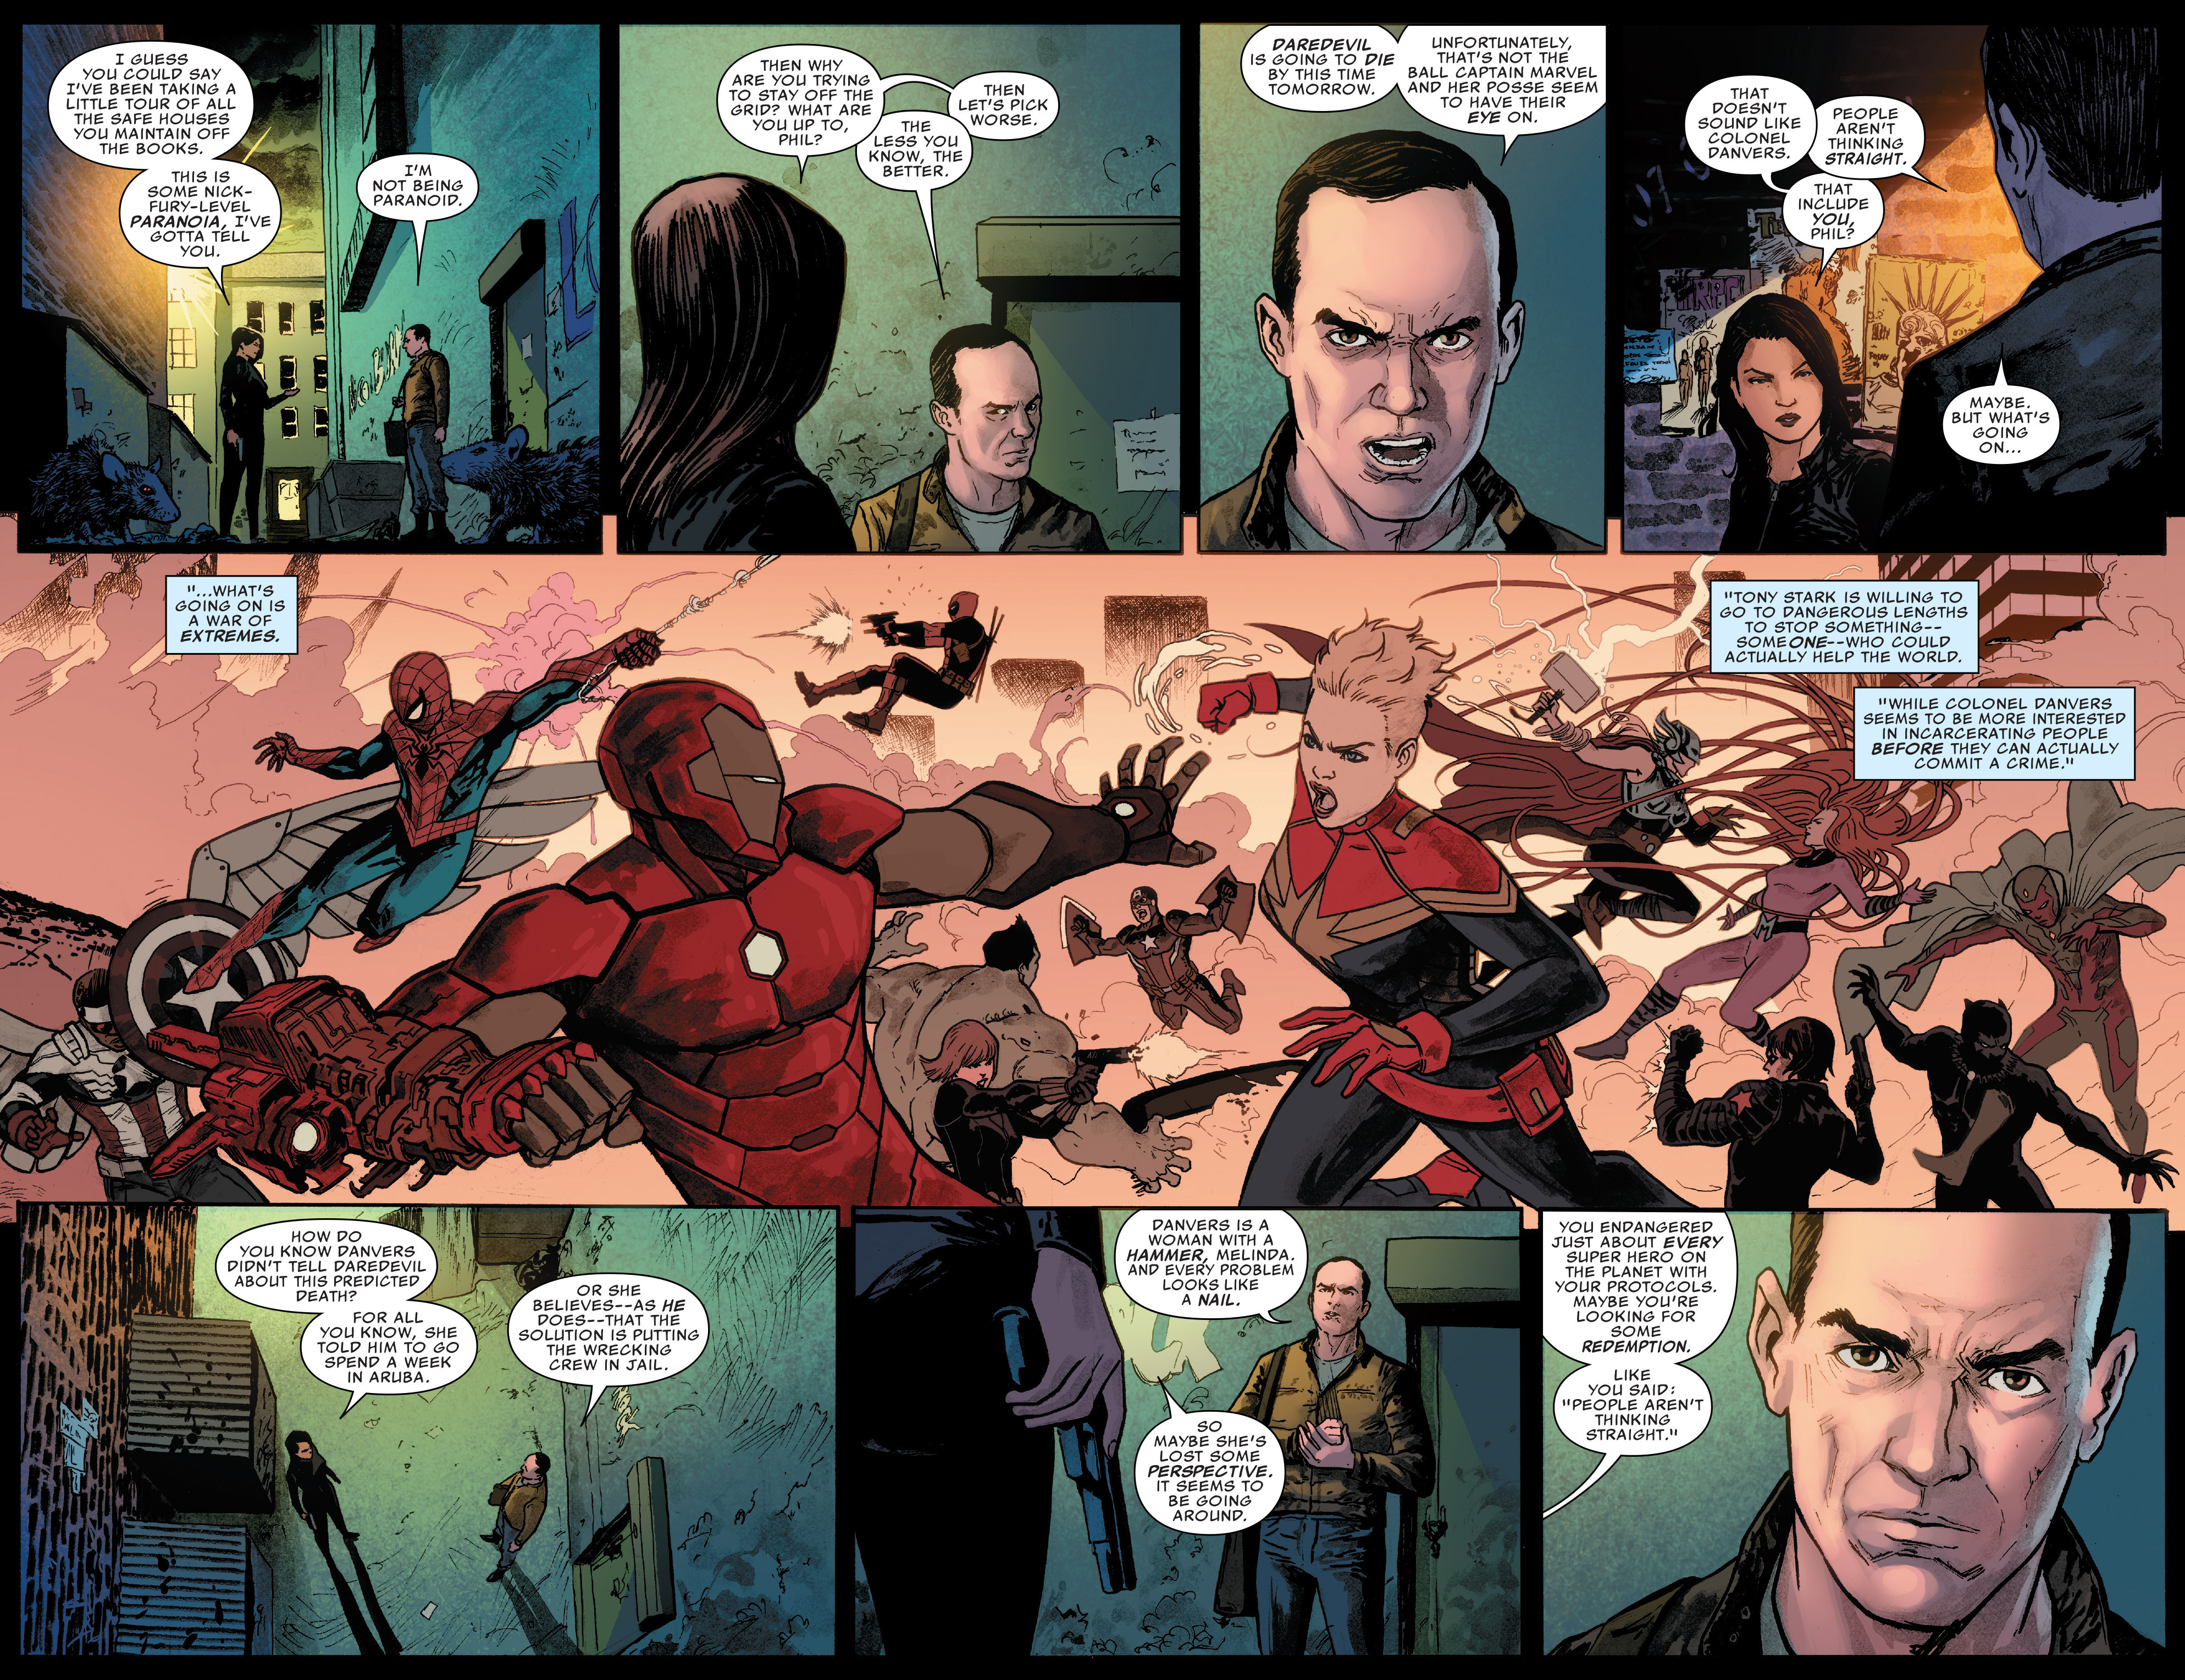 Read online Agents of S.H.I.E.L.D. comic -  Issue #8 - 8